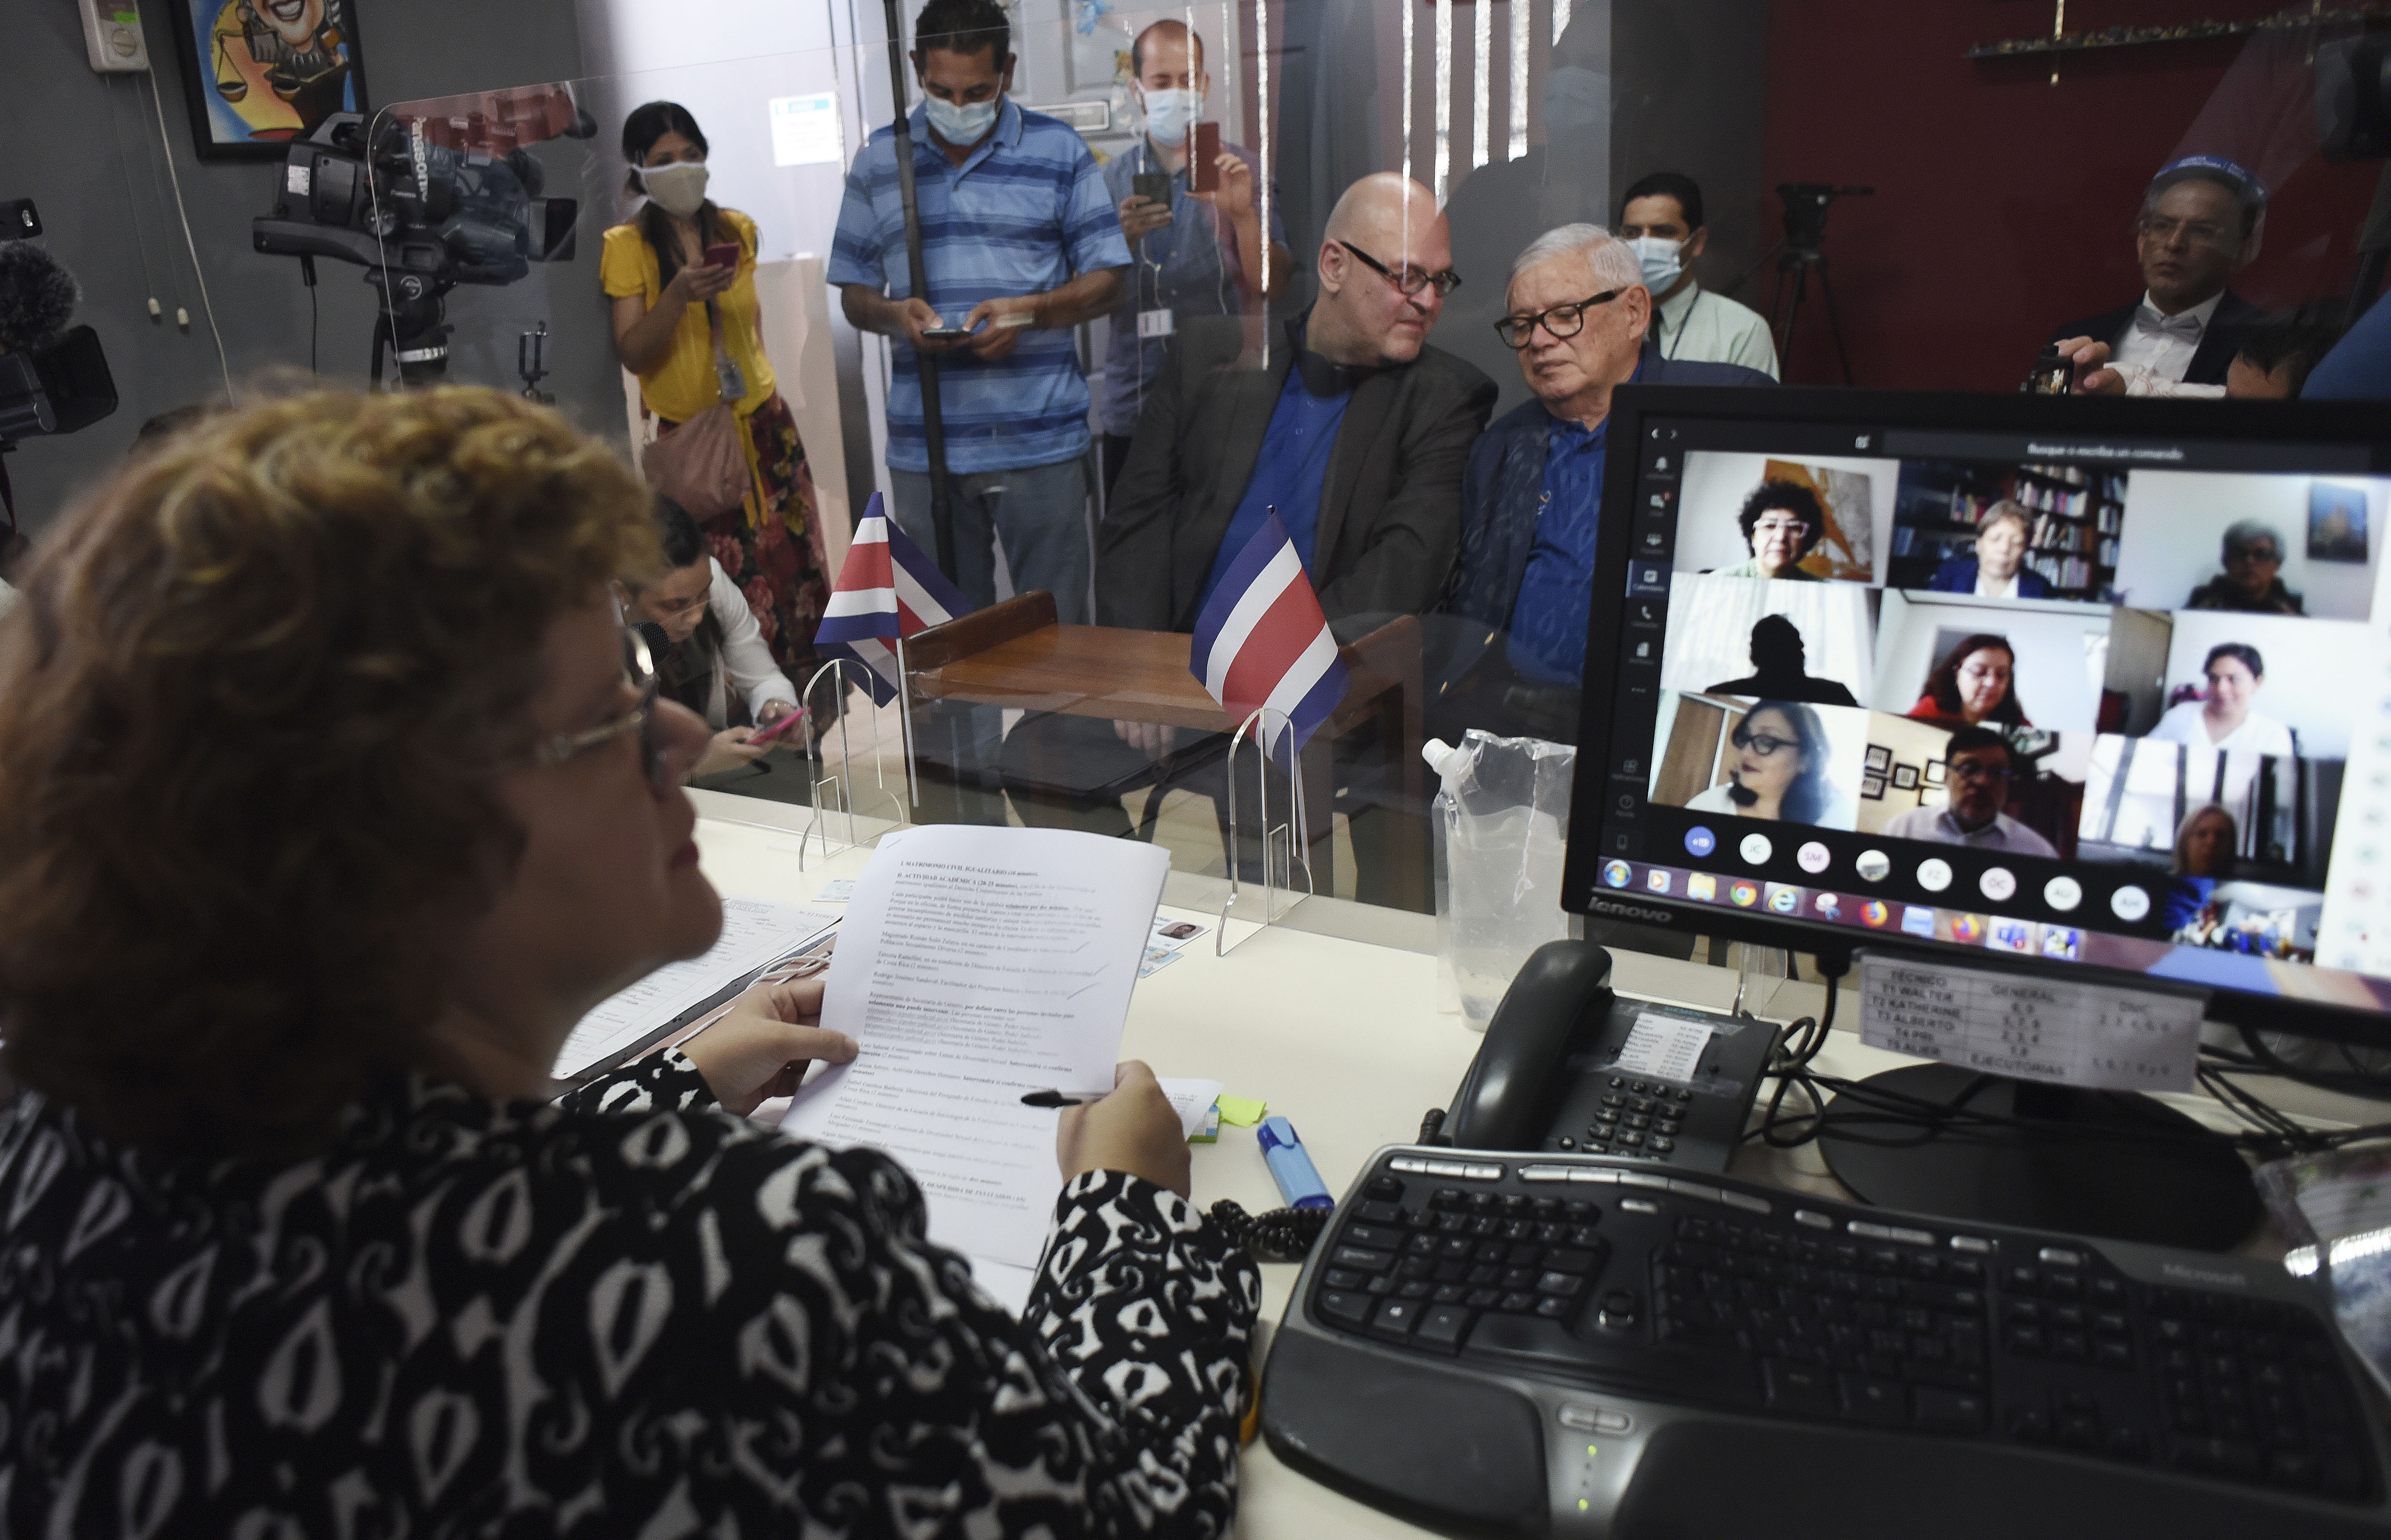 Costa Rica Latest Country to Legalize Same-sex Marriage